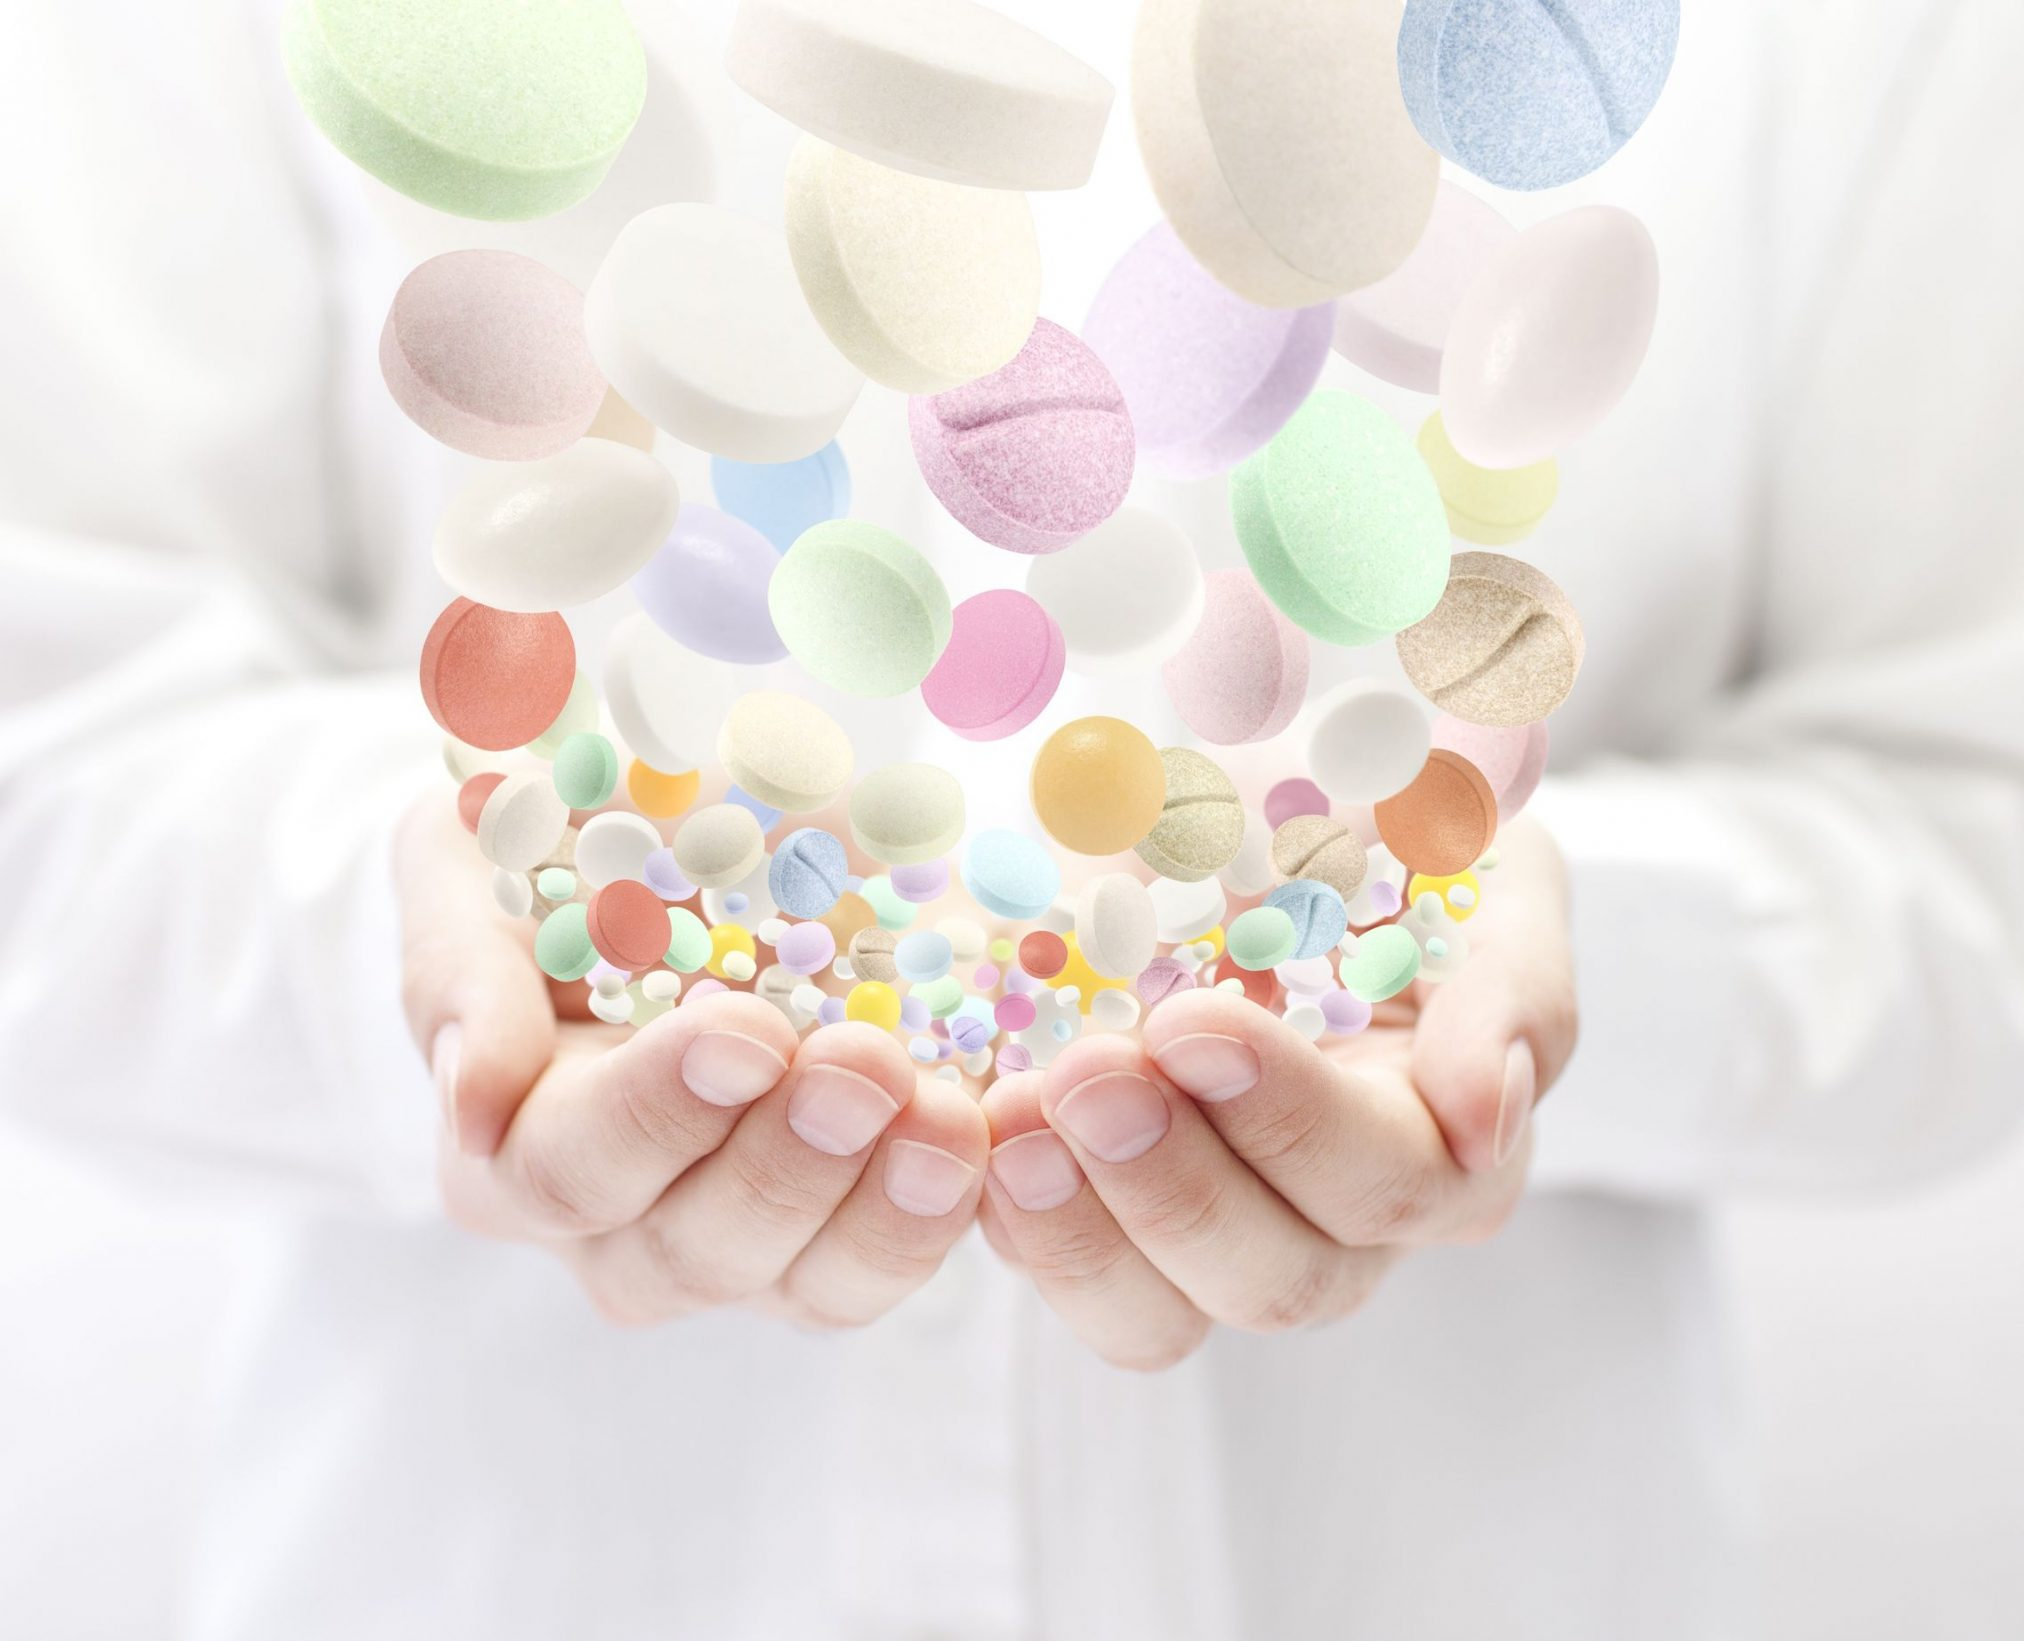 Pills falling into pharmacist's hands